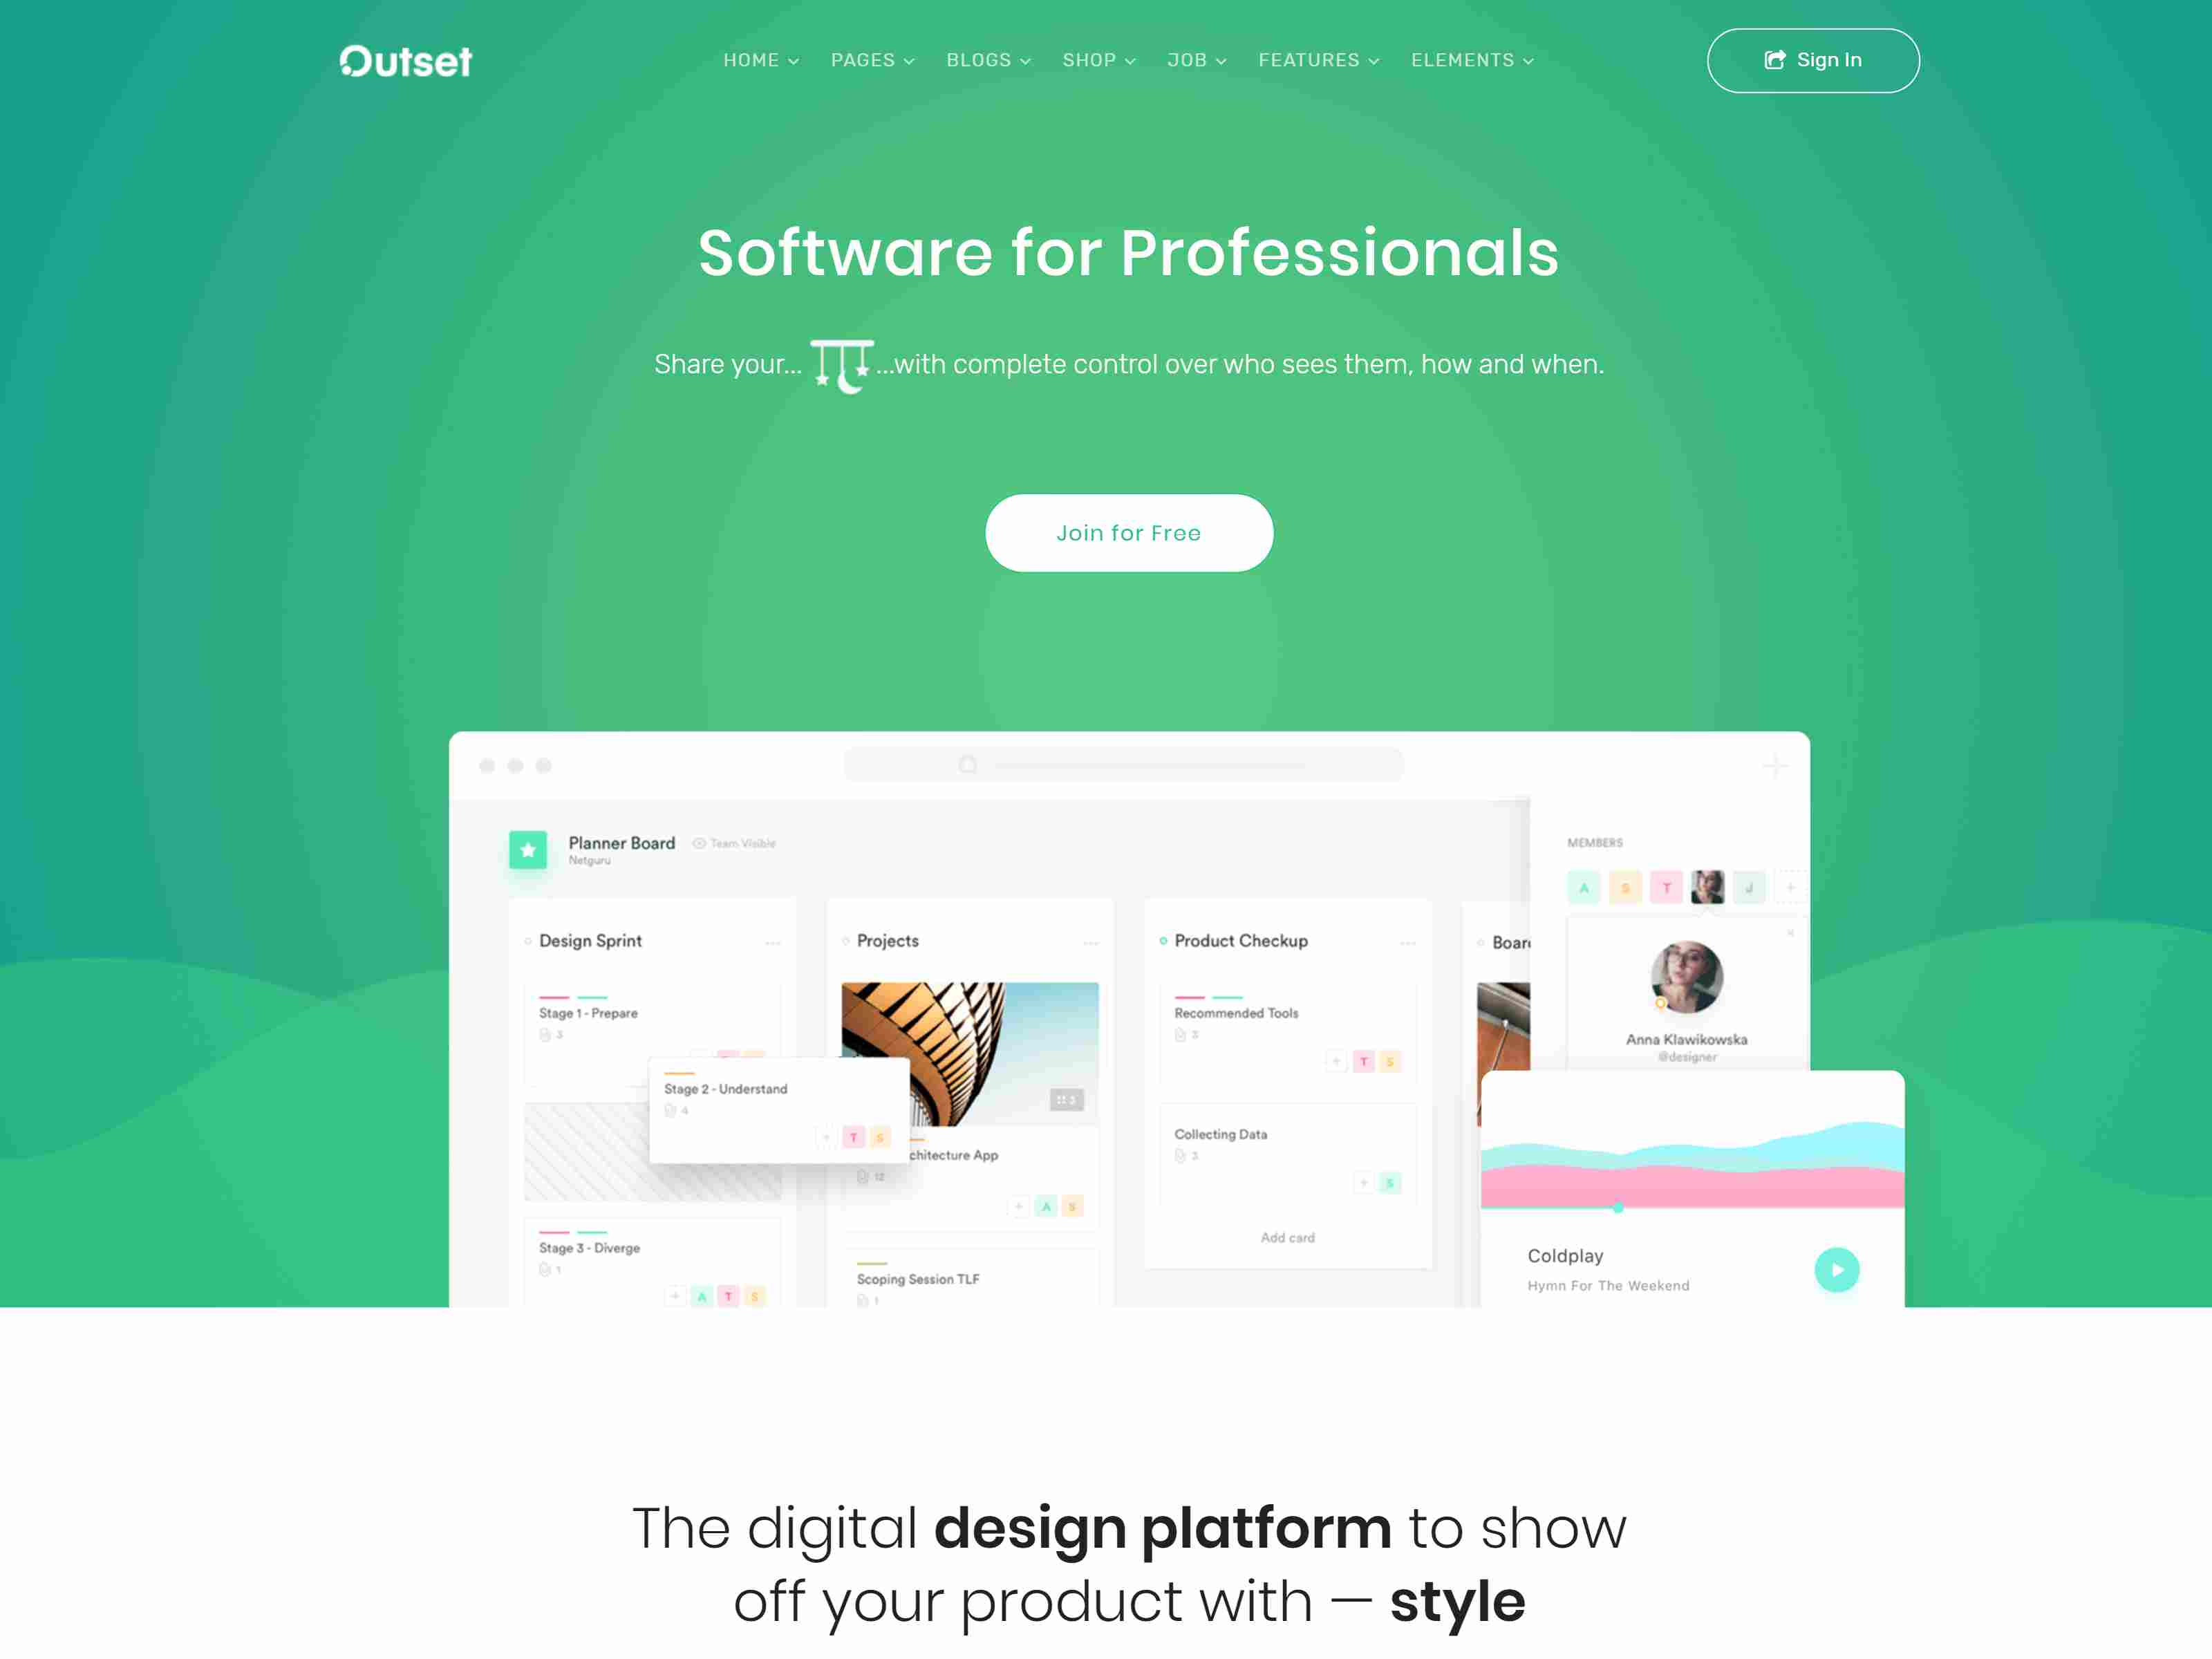 The Outset - MultiPurpose WordPress Theme for Saas & Startup